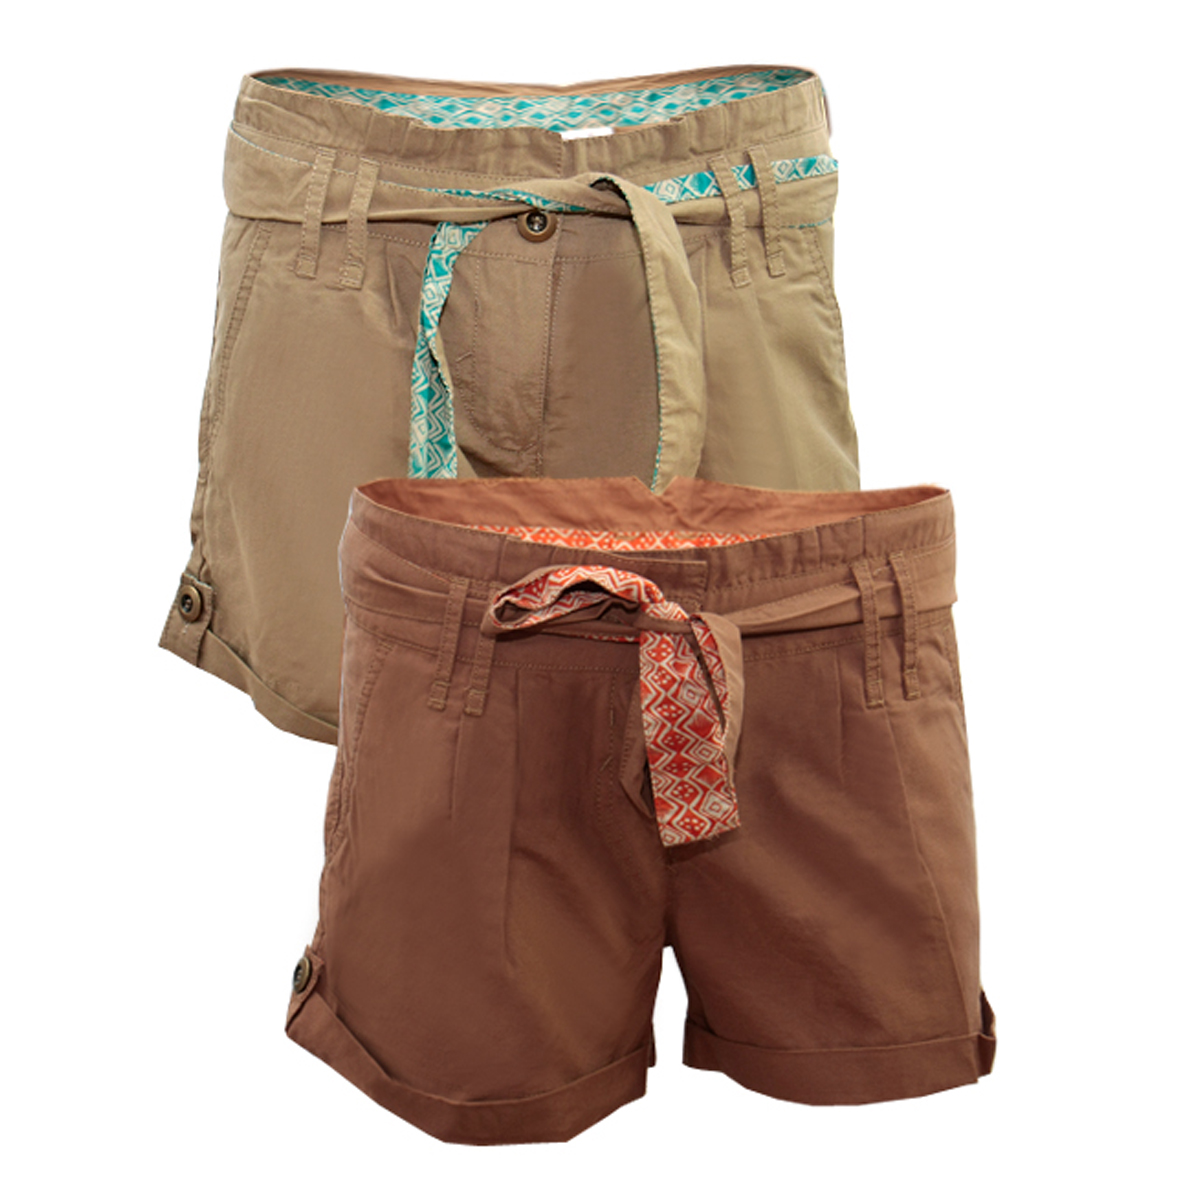 Free shipping and returns on Women's Brown Shorts at chaplin-favor.tk